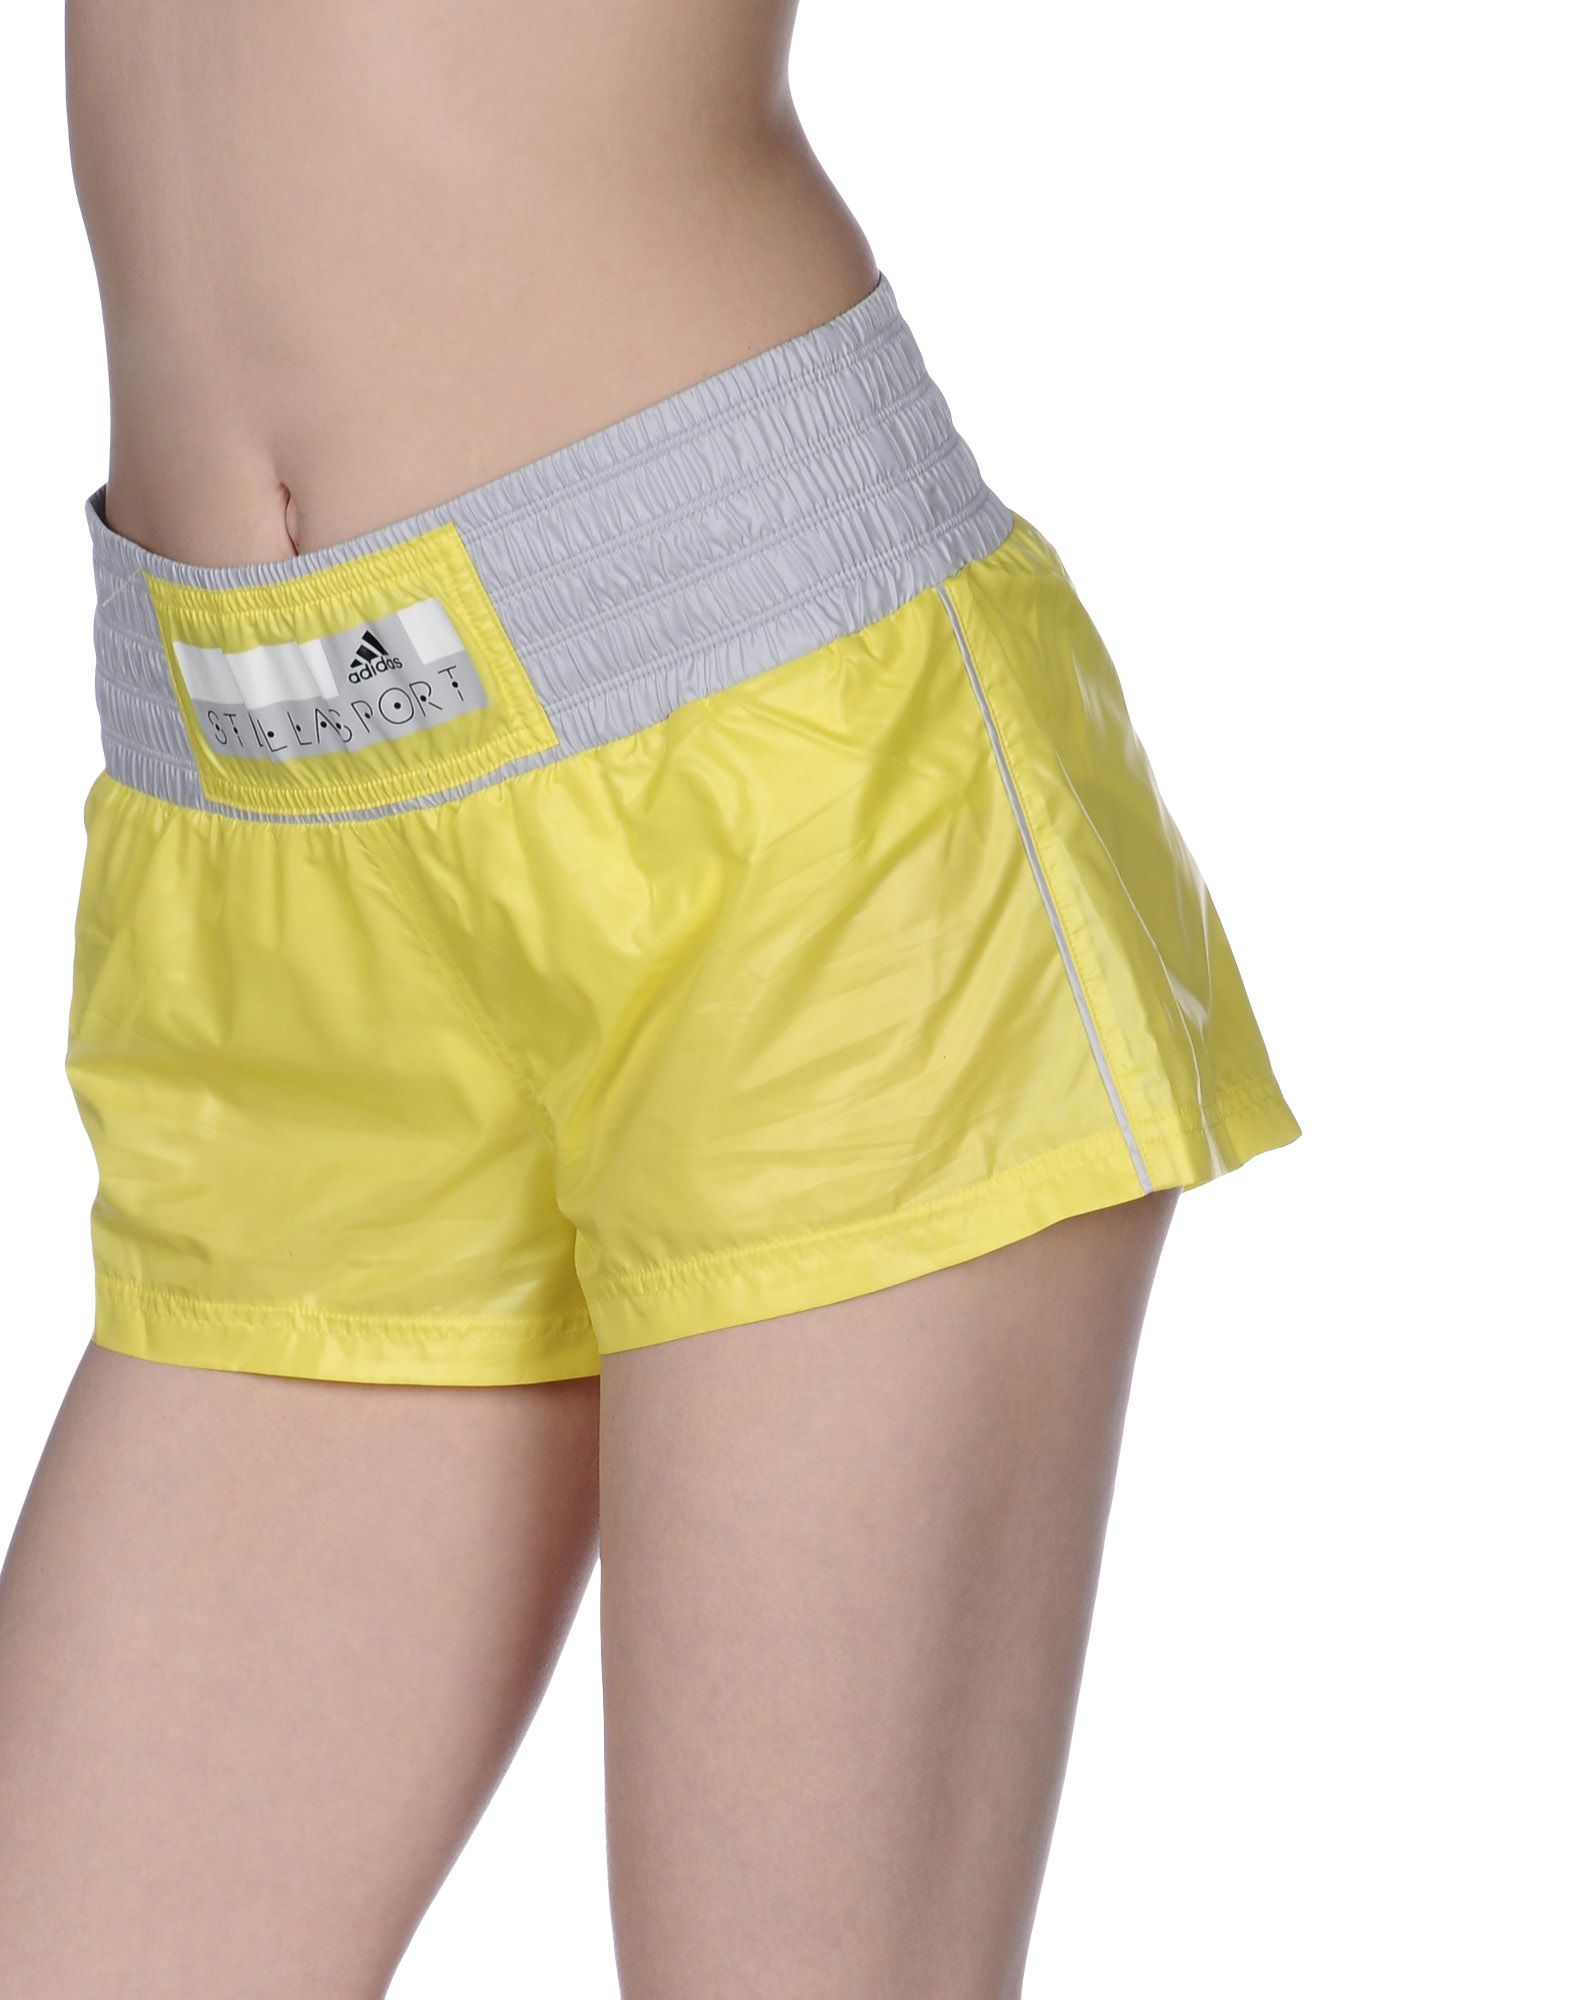 adidas shorts yellow